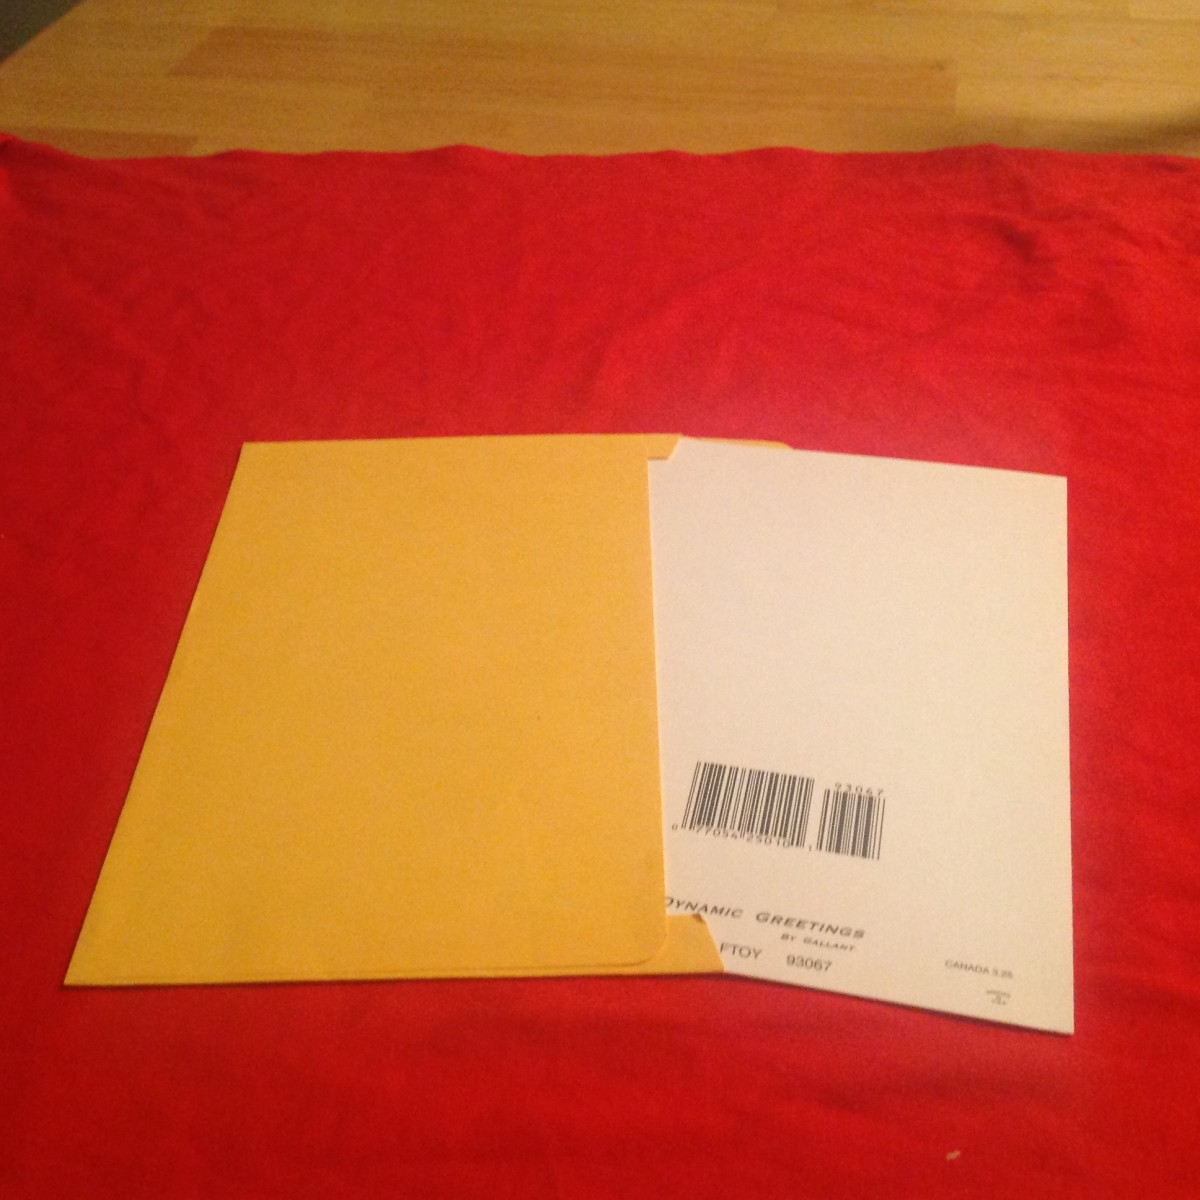 How to put a greeting card in an envelope holidappy putting a greeting card in an envelope is such a simple act that 9 out of 10 people take for granted dont be one of them m4hsunfo